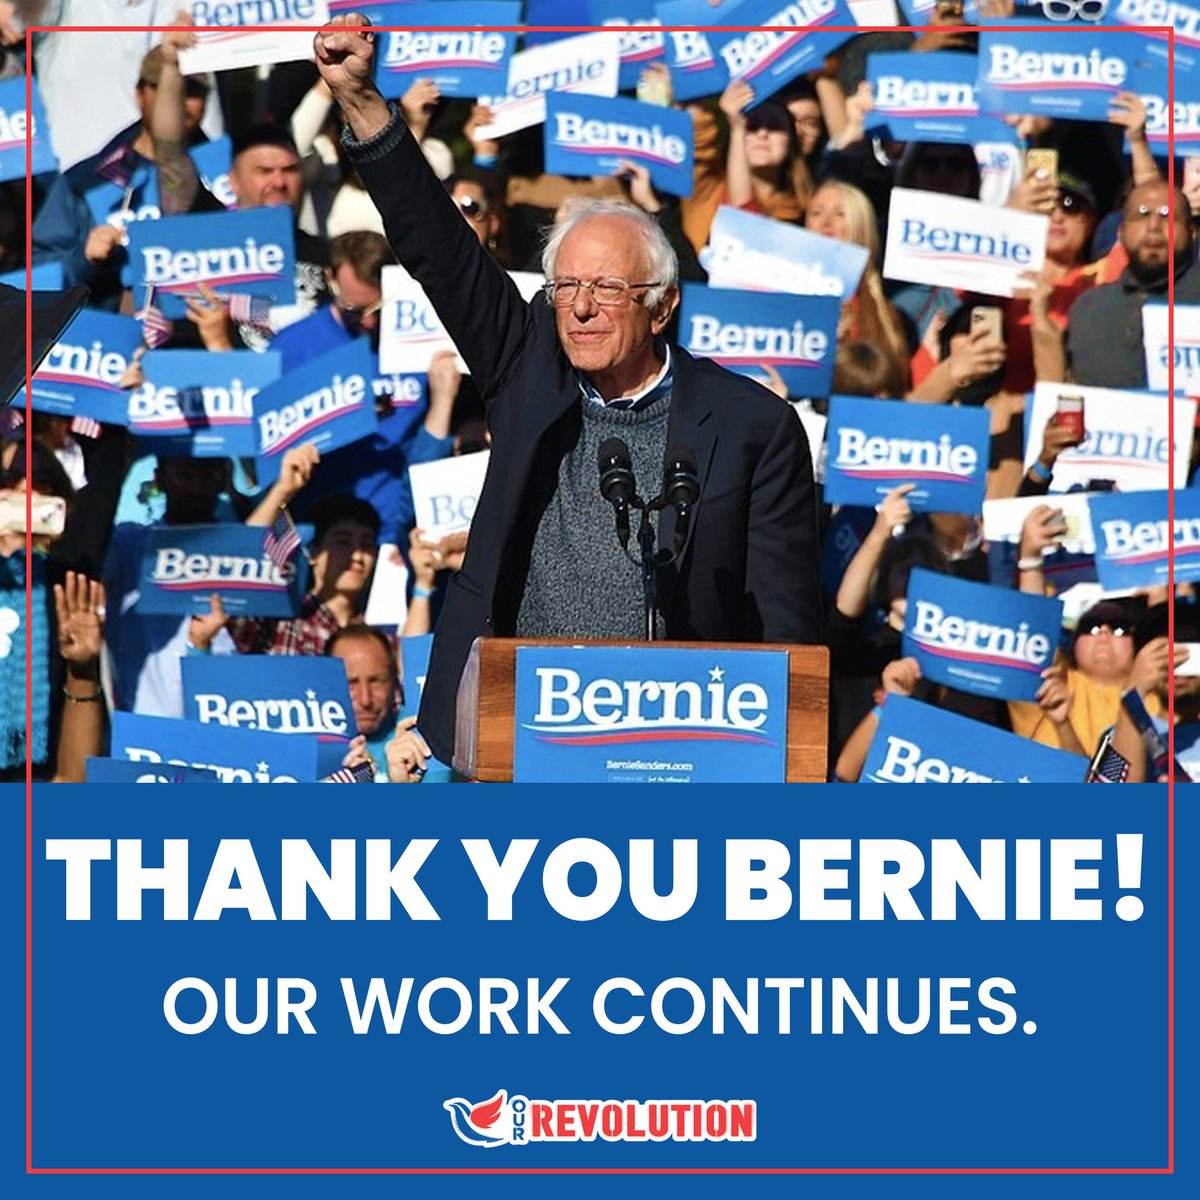 @OurRevolution's photo on #thankyoubernie